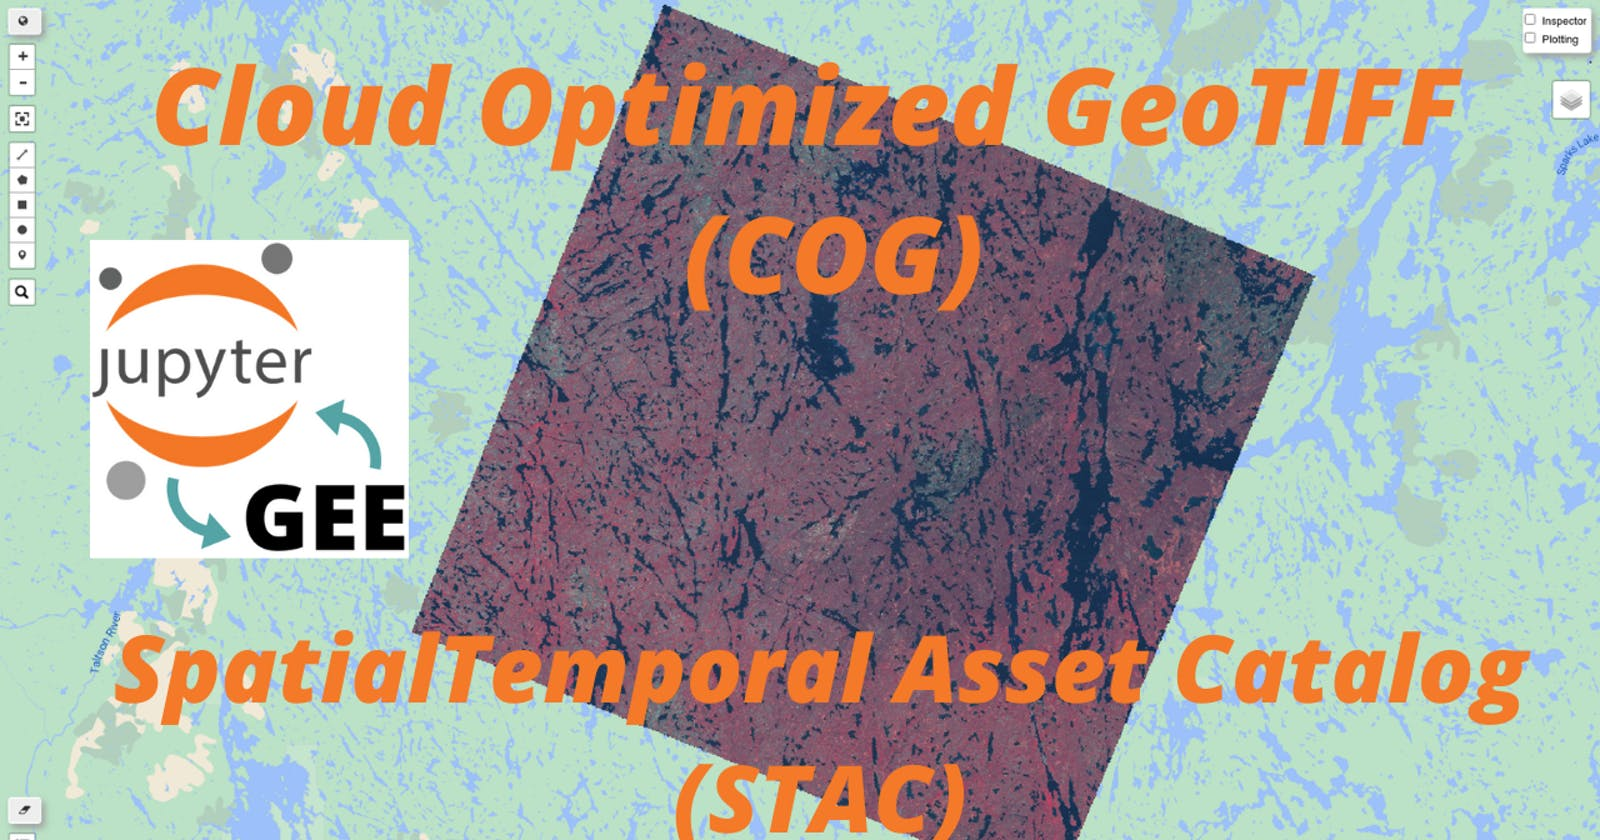 GEE Tutorial #44 - How to use Cloud Optimized GeoTIFF (COG) and SpatioTemporal Asset Catalog (STAC)